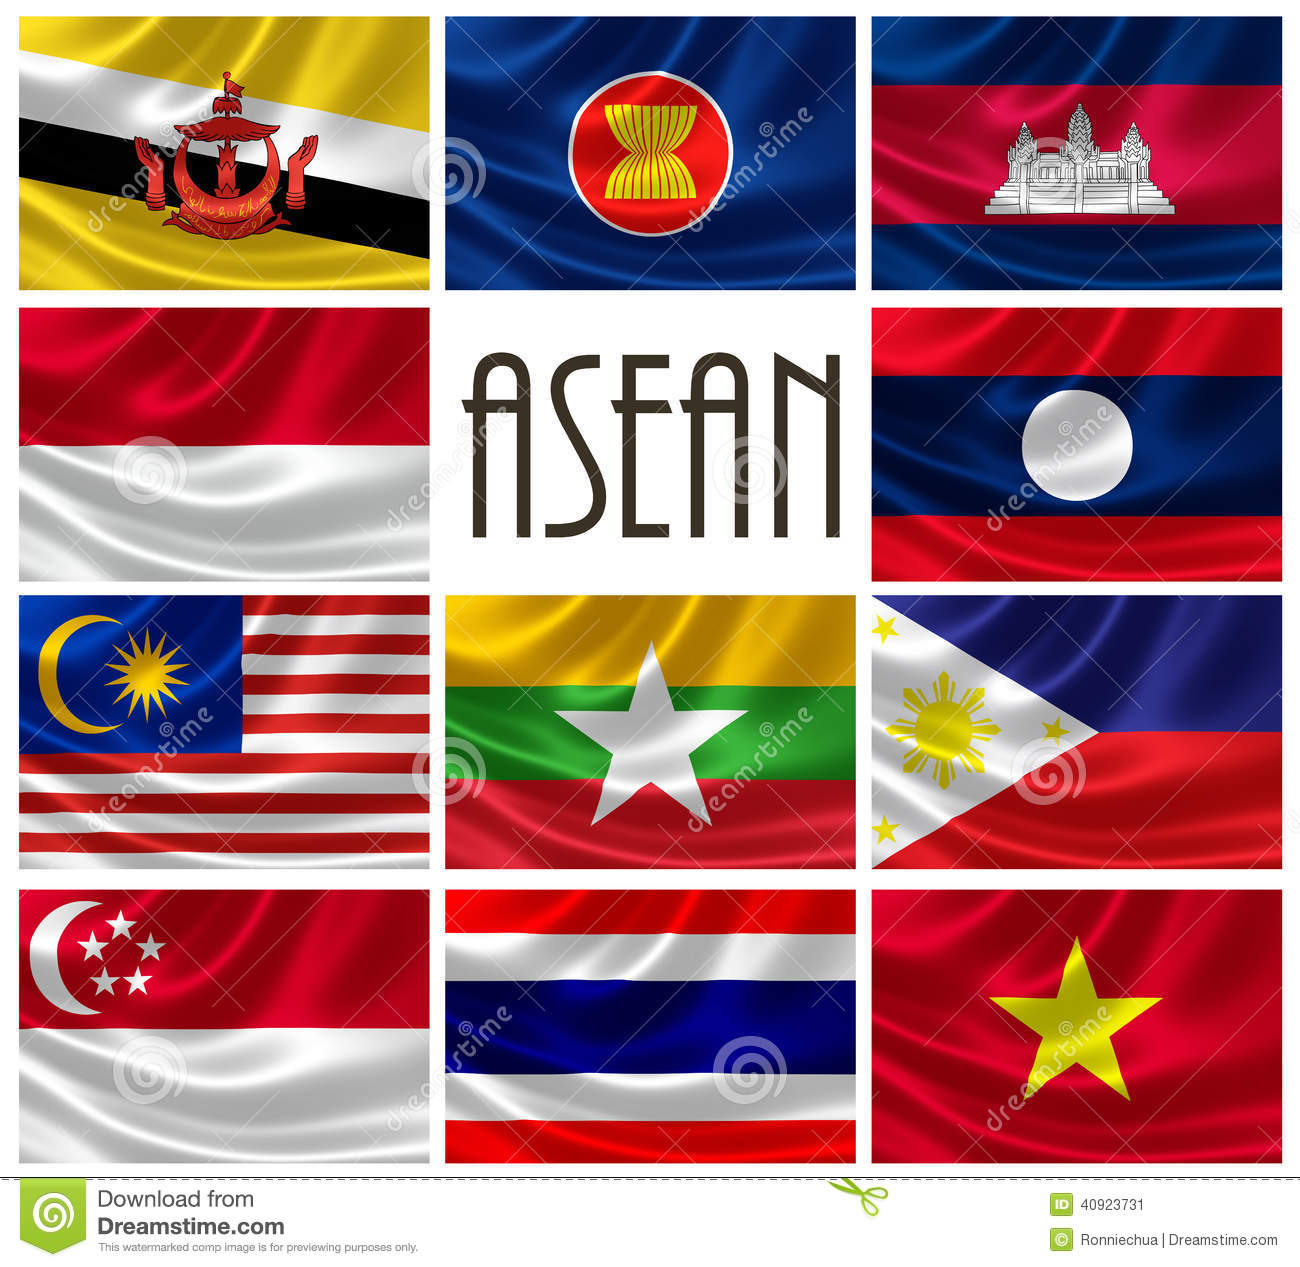 Image result for flags of asean member states